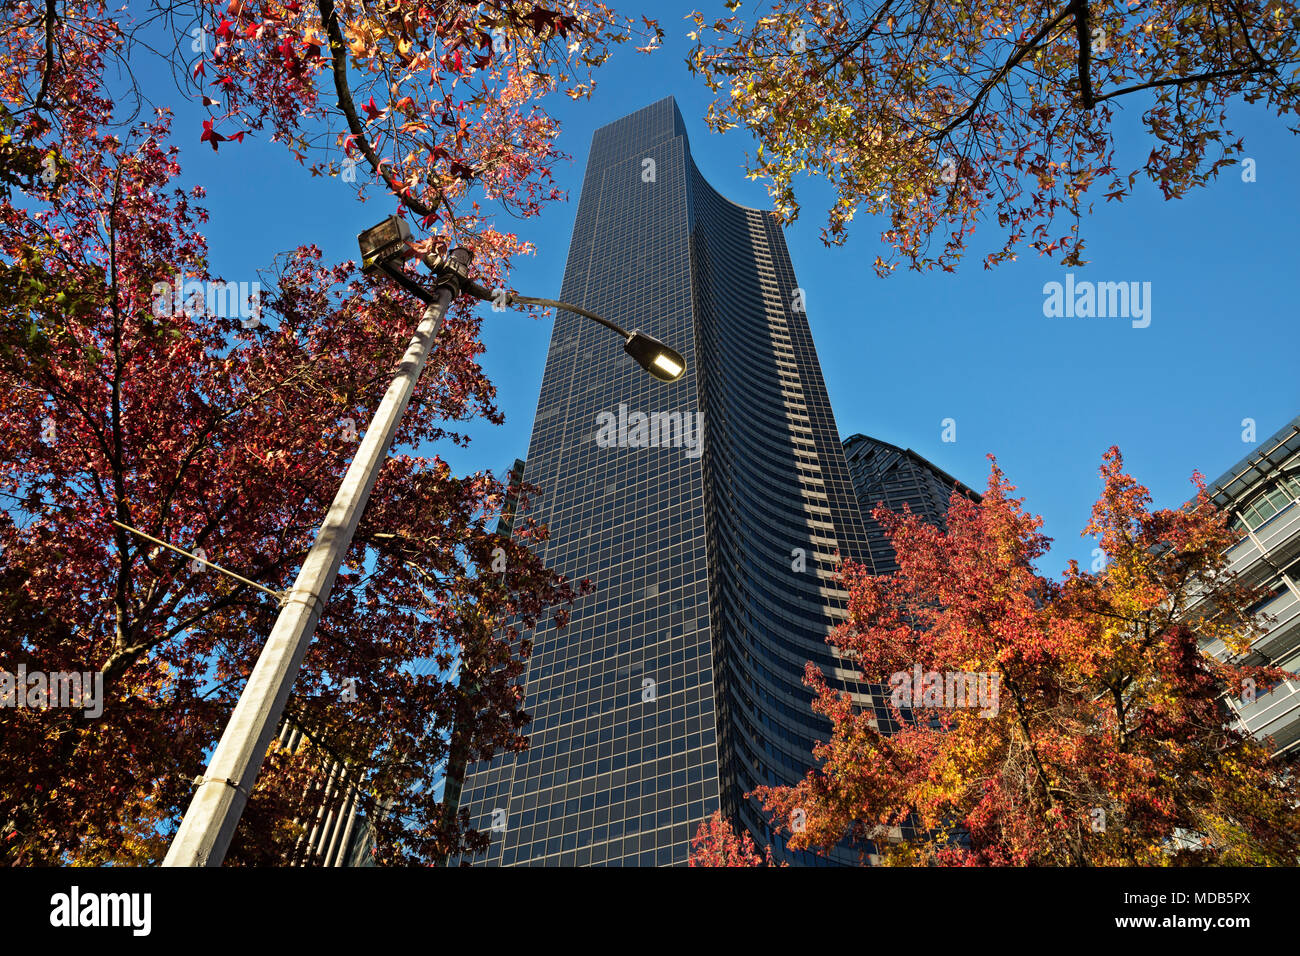 WA15288-00...WASHINGTON - Columbia Center, at 76 floors high, is the tallest building Seattle. - Stock Image